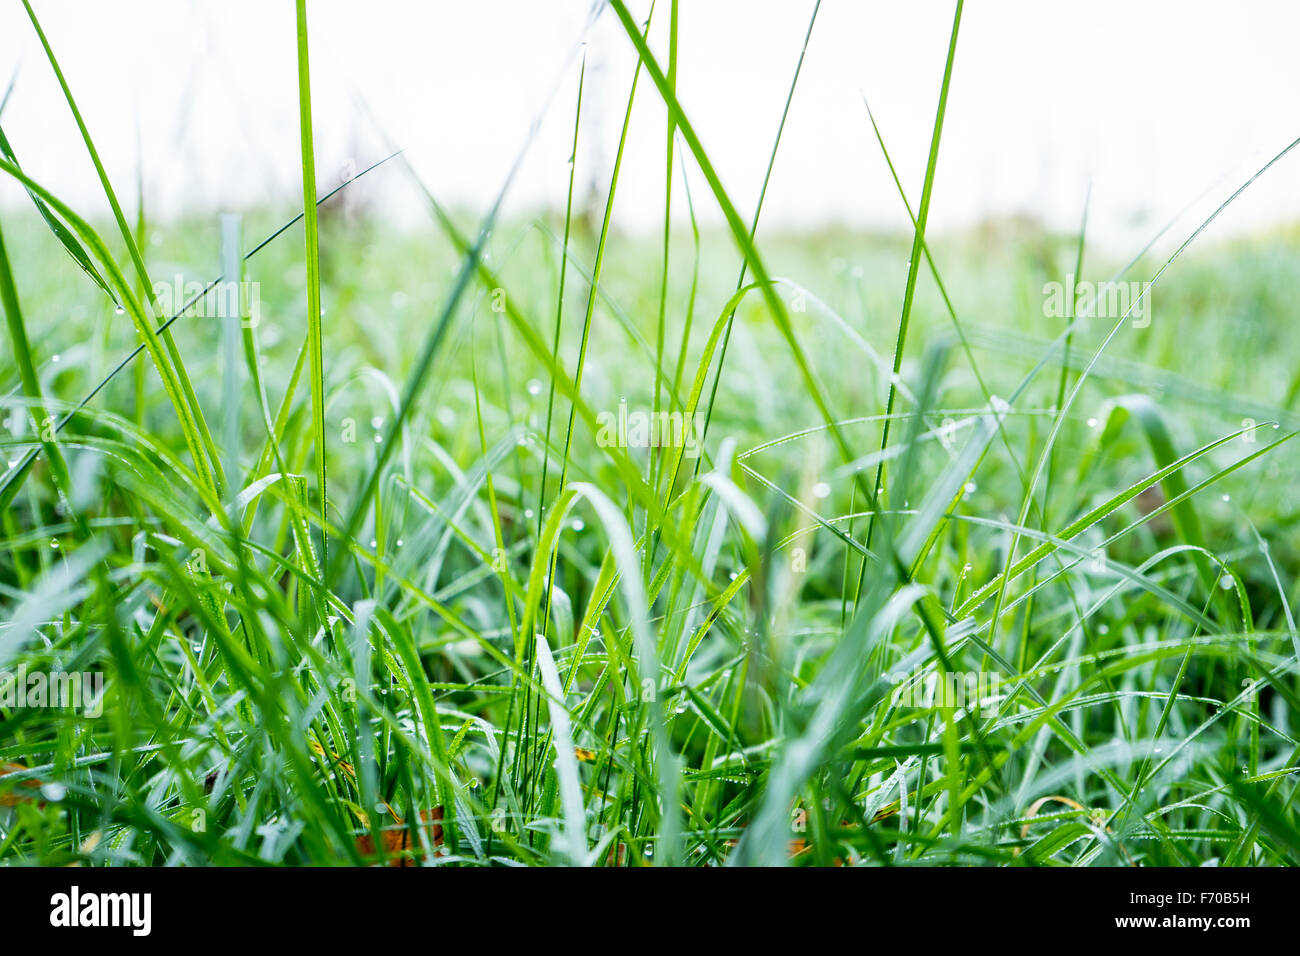 Abtract image of water droplets on blades of greass - Stock Image